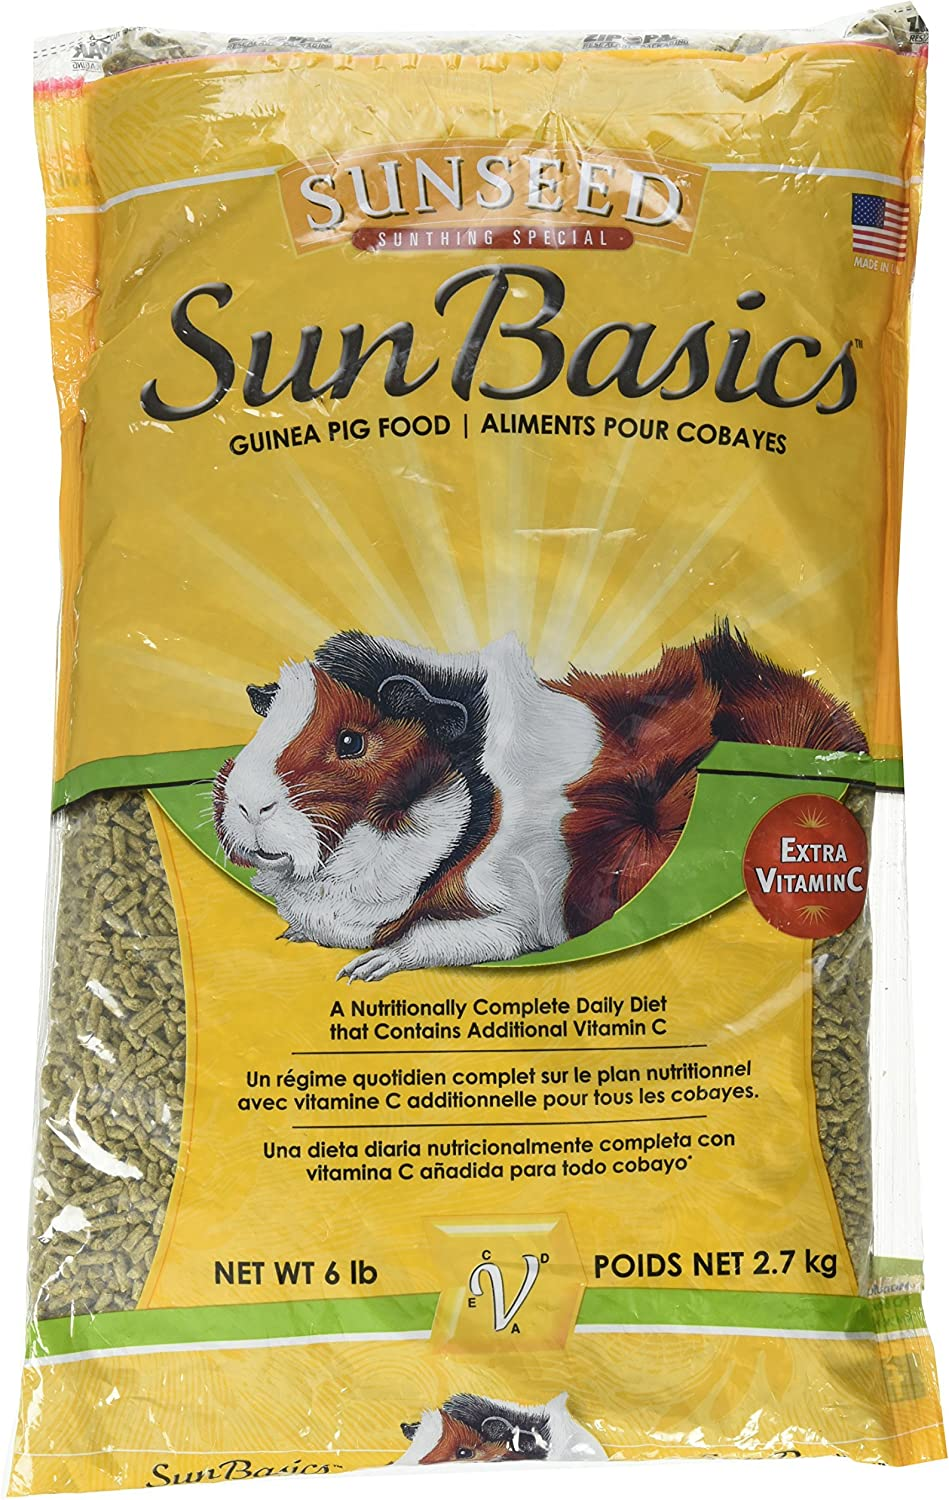 Sunseed Company Sunthing Special Sun Basics Guinea Pig Food, 6 Pound Bag